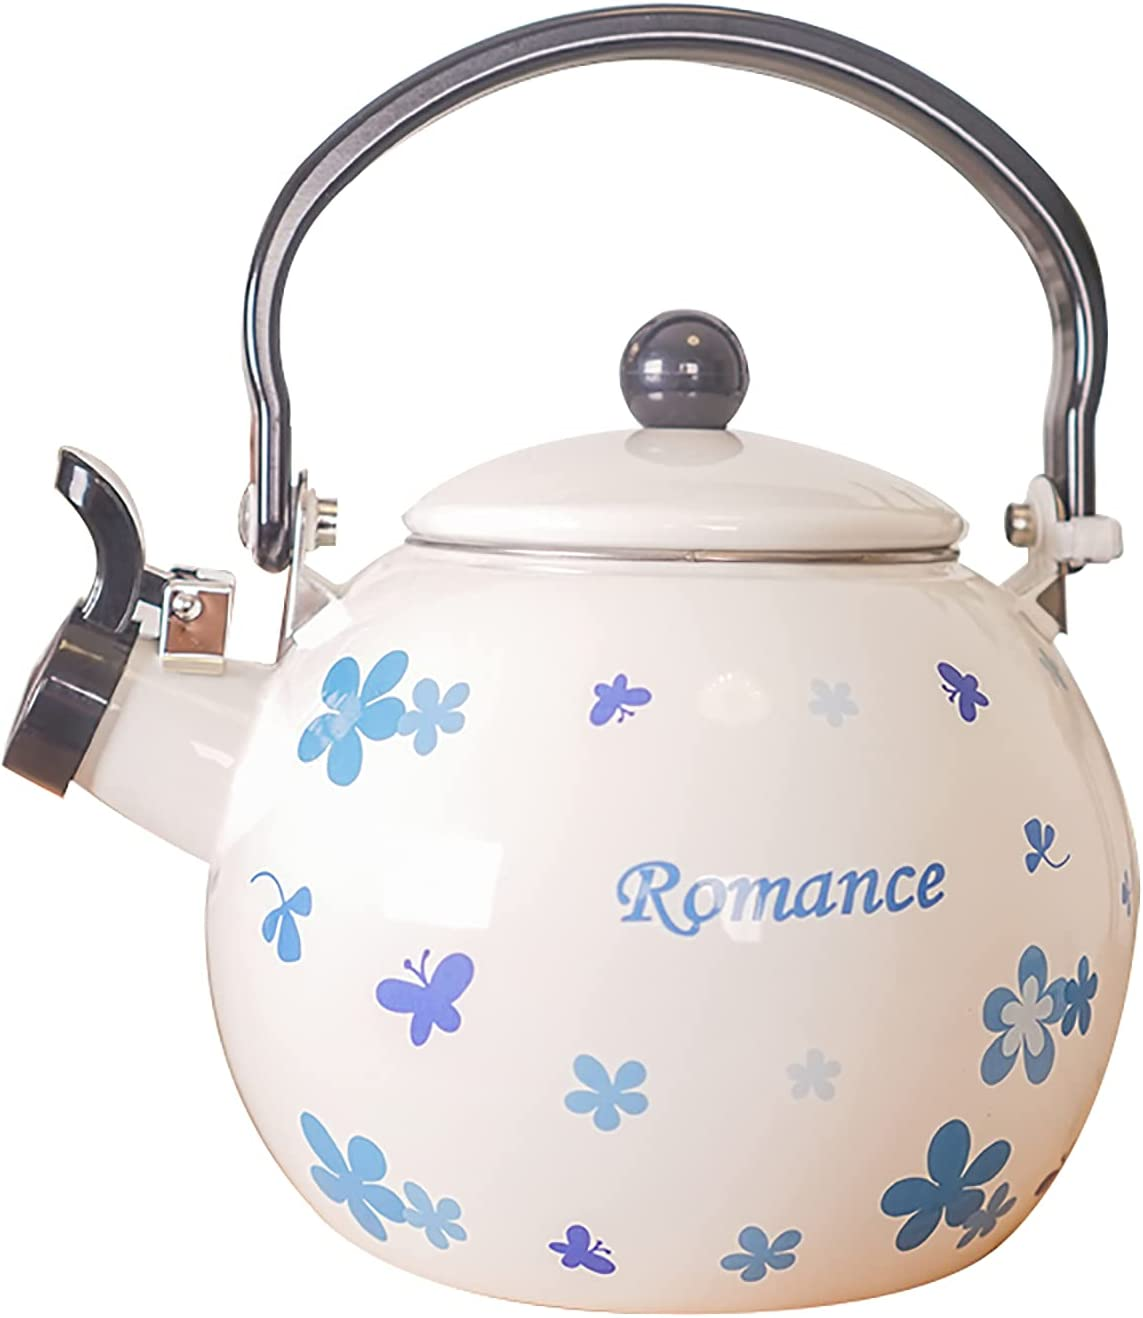 Stove Top Whistling Max 51% OFF Tea Kettle 2 Translated Stainless Te L Steel